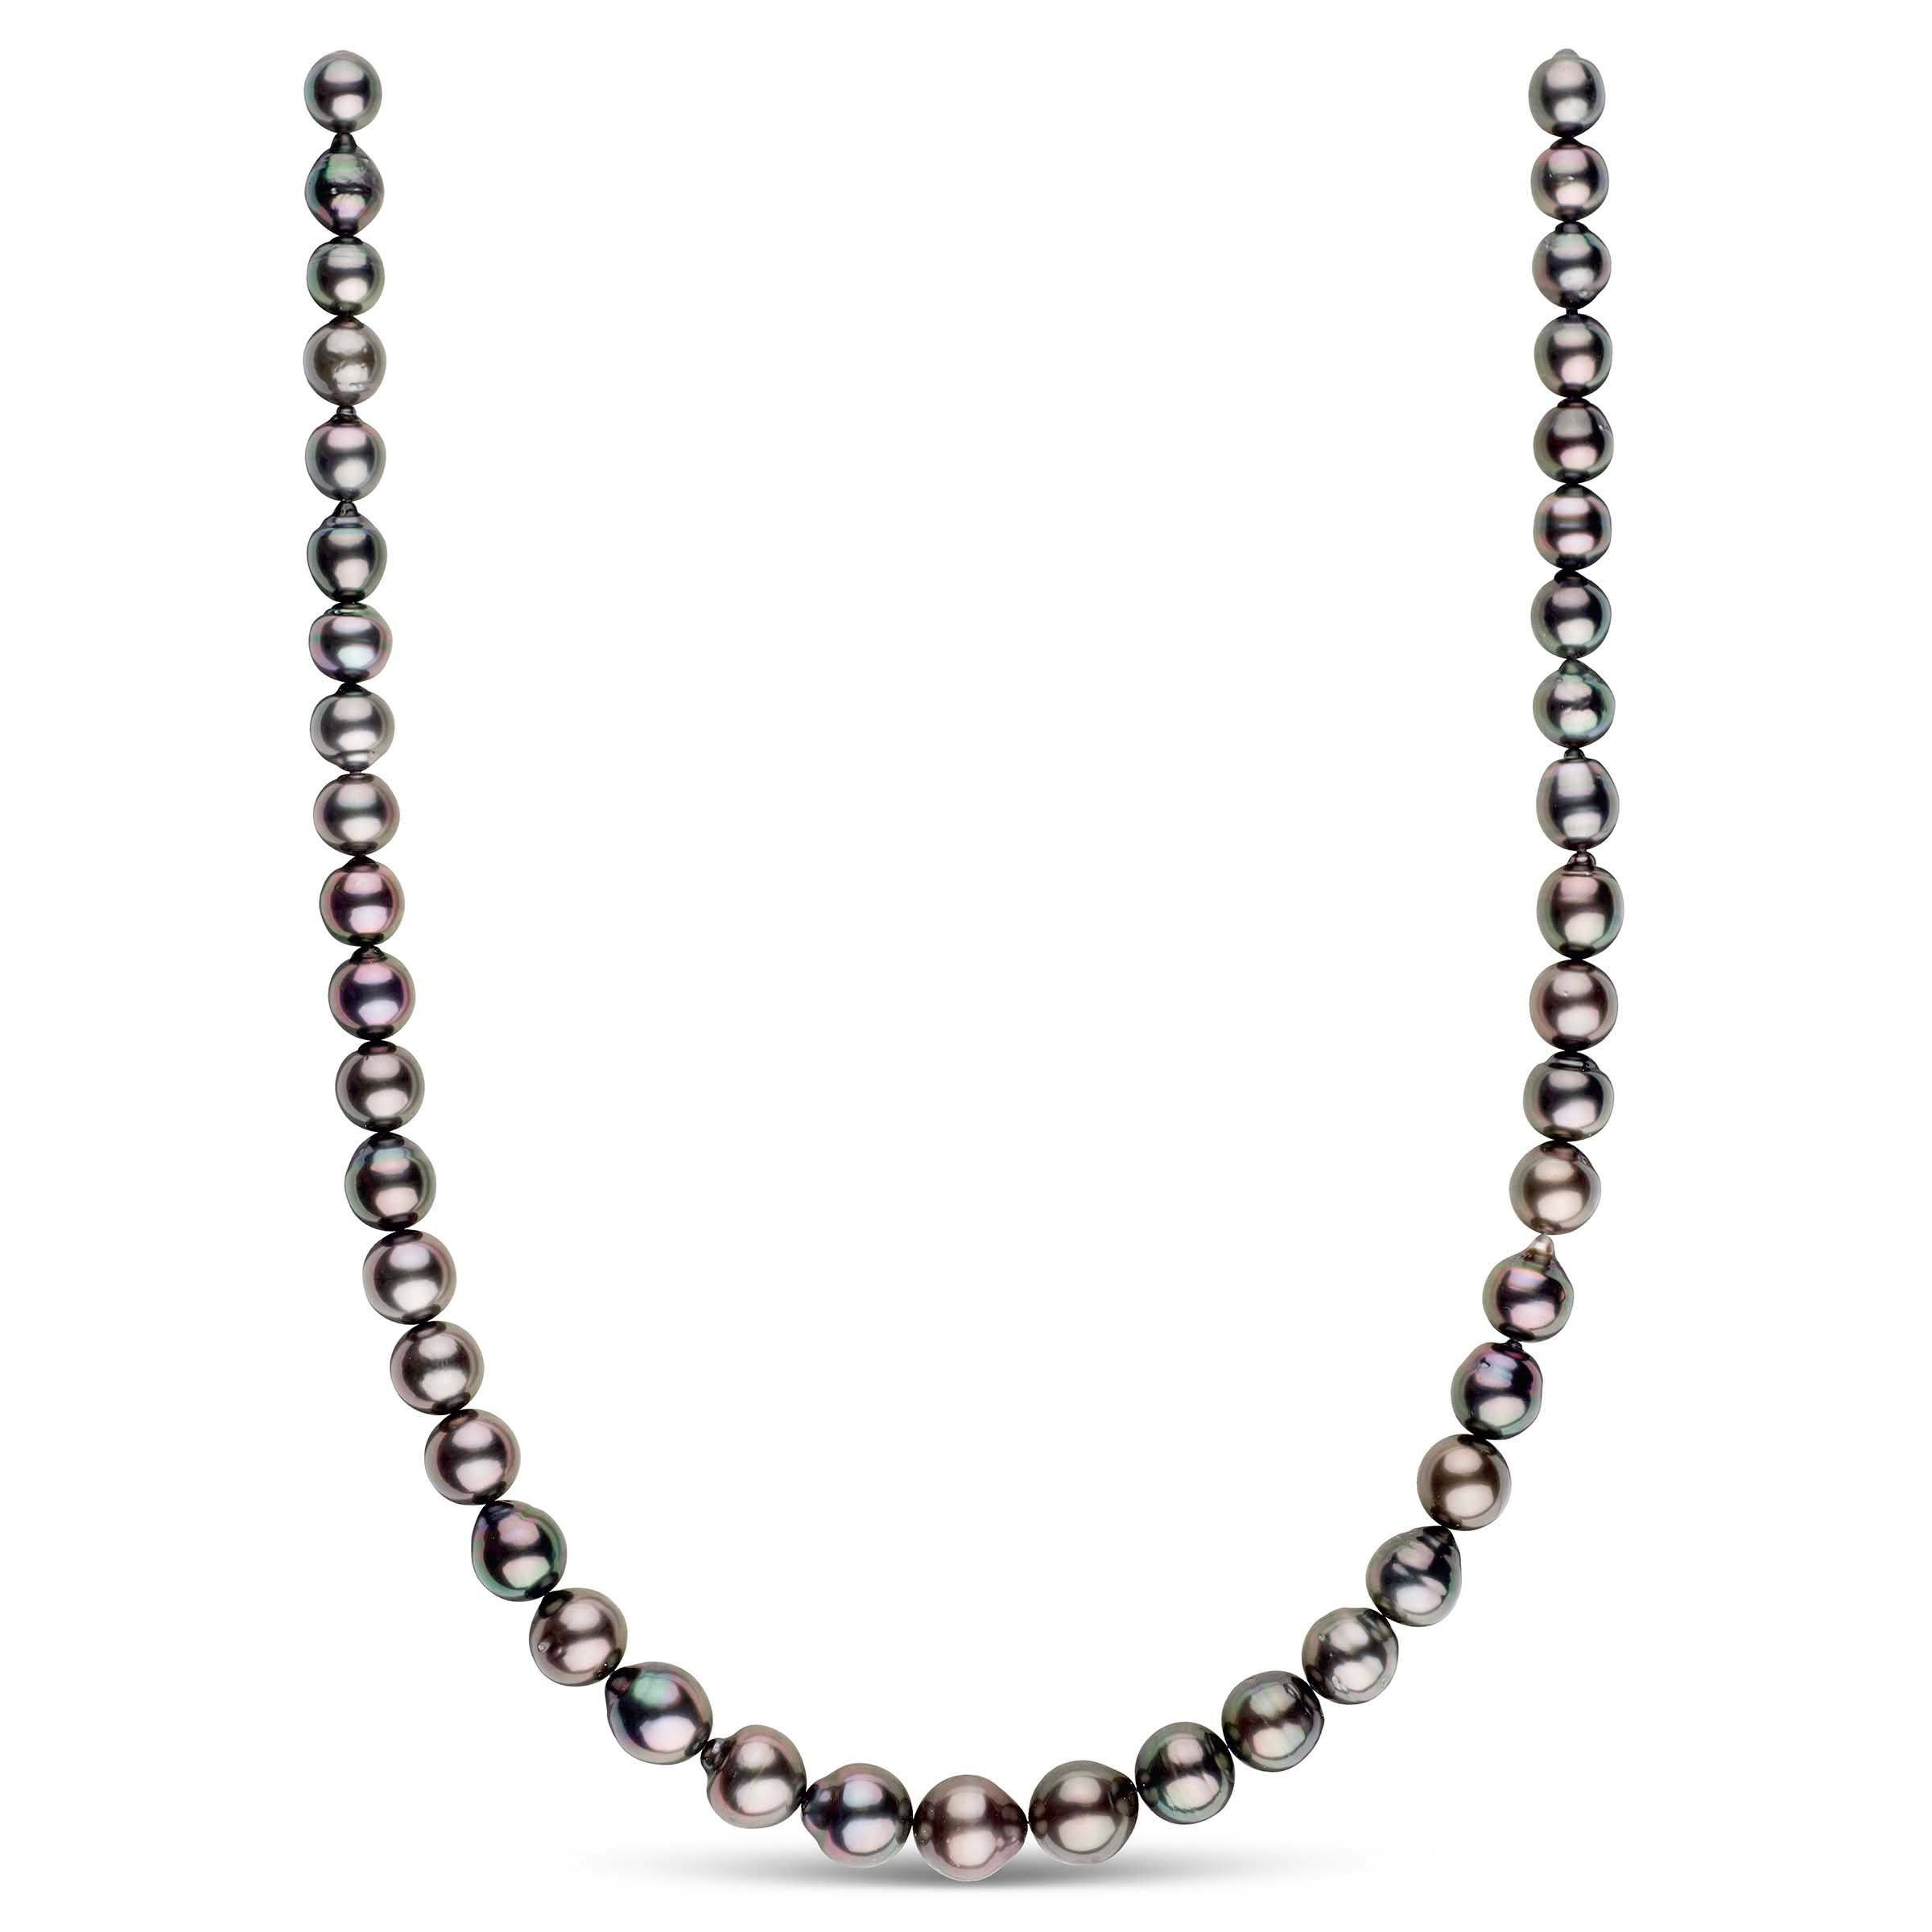 18-inch 8.0-10.4 mm AA+/AAA Drop Tahitian Pearl Necklace